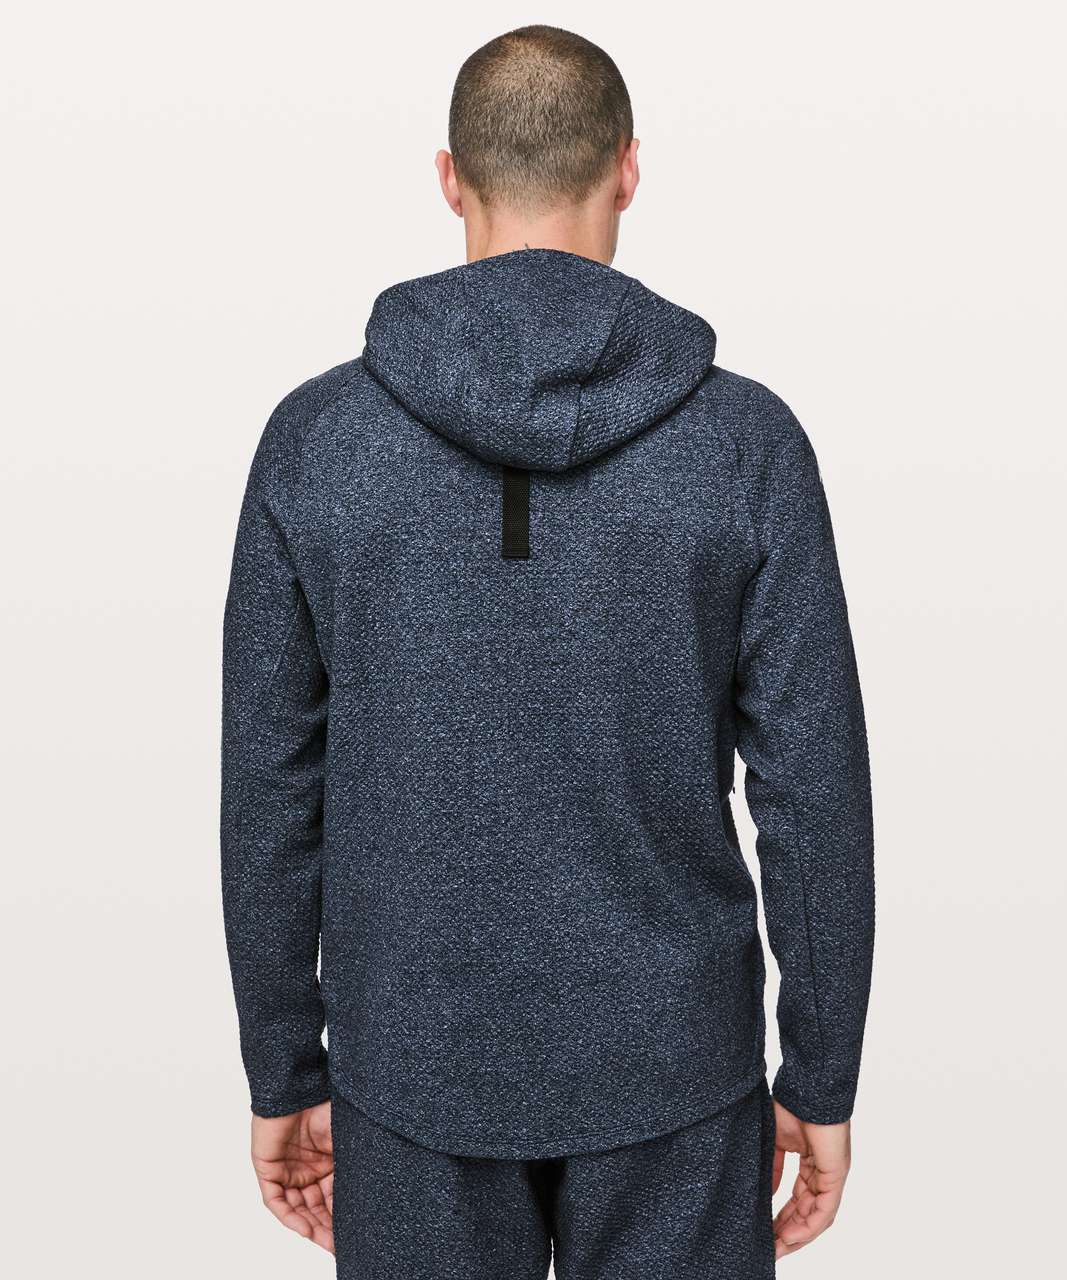 Lululemon At Ease Hoodie - Heathered Speckled Jet Blue / Black